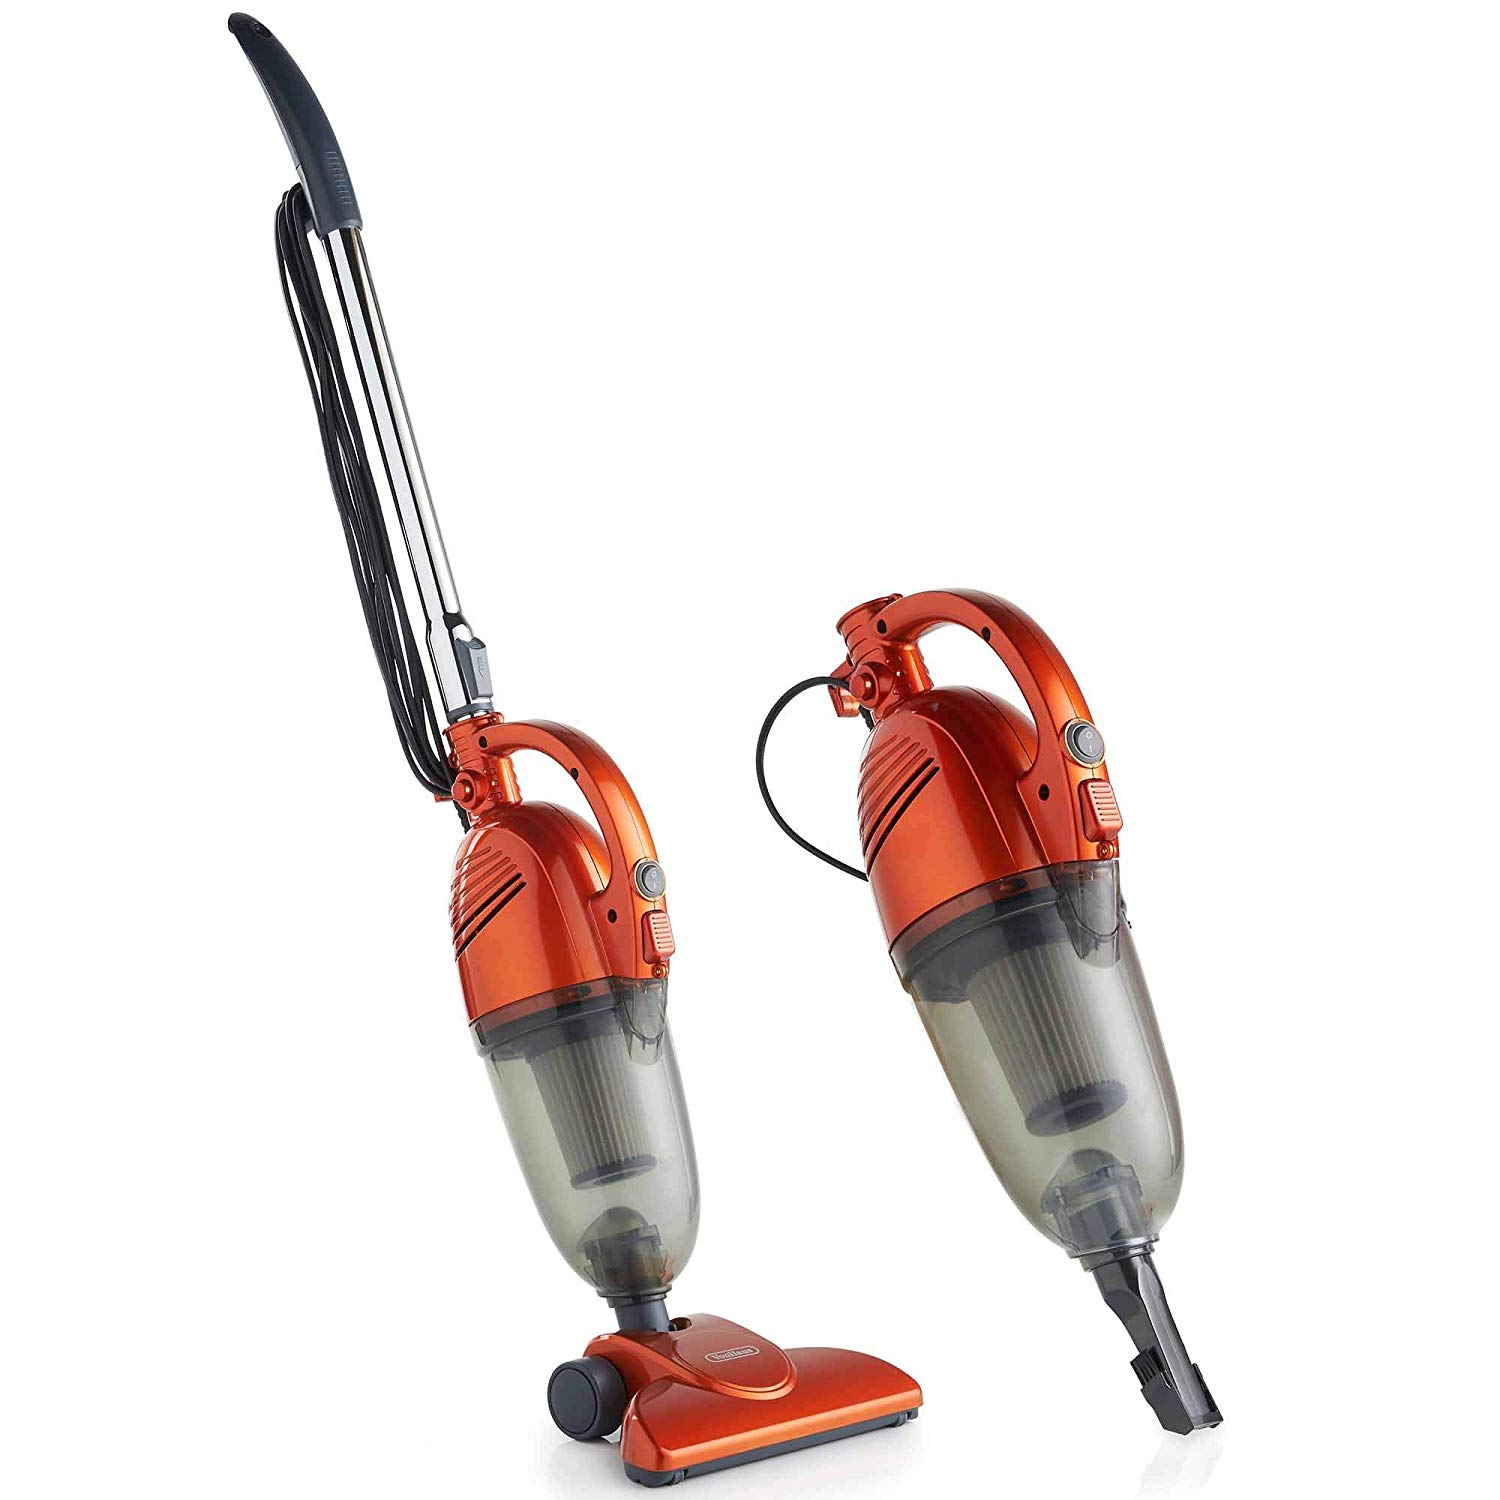 VonHaus 2 in 1 handheld vacuum cleaner